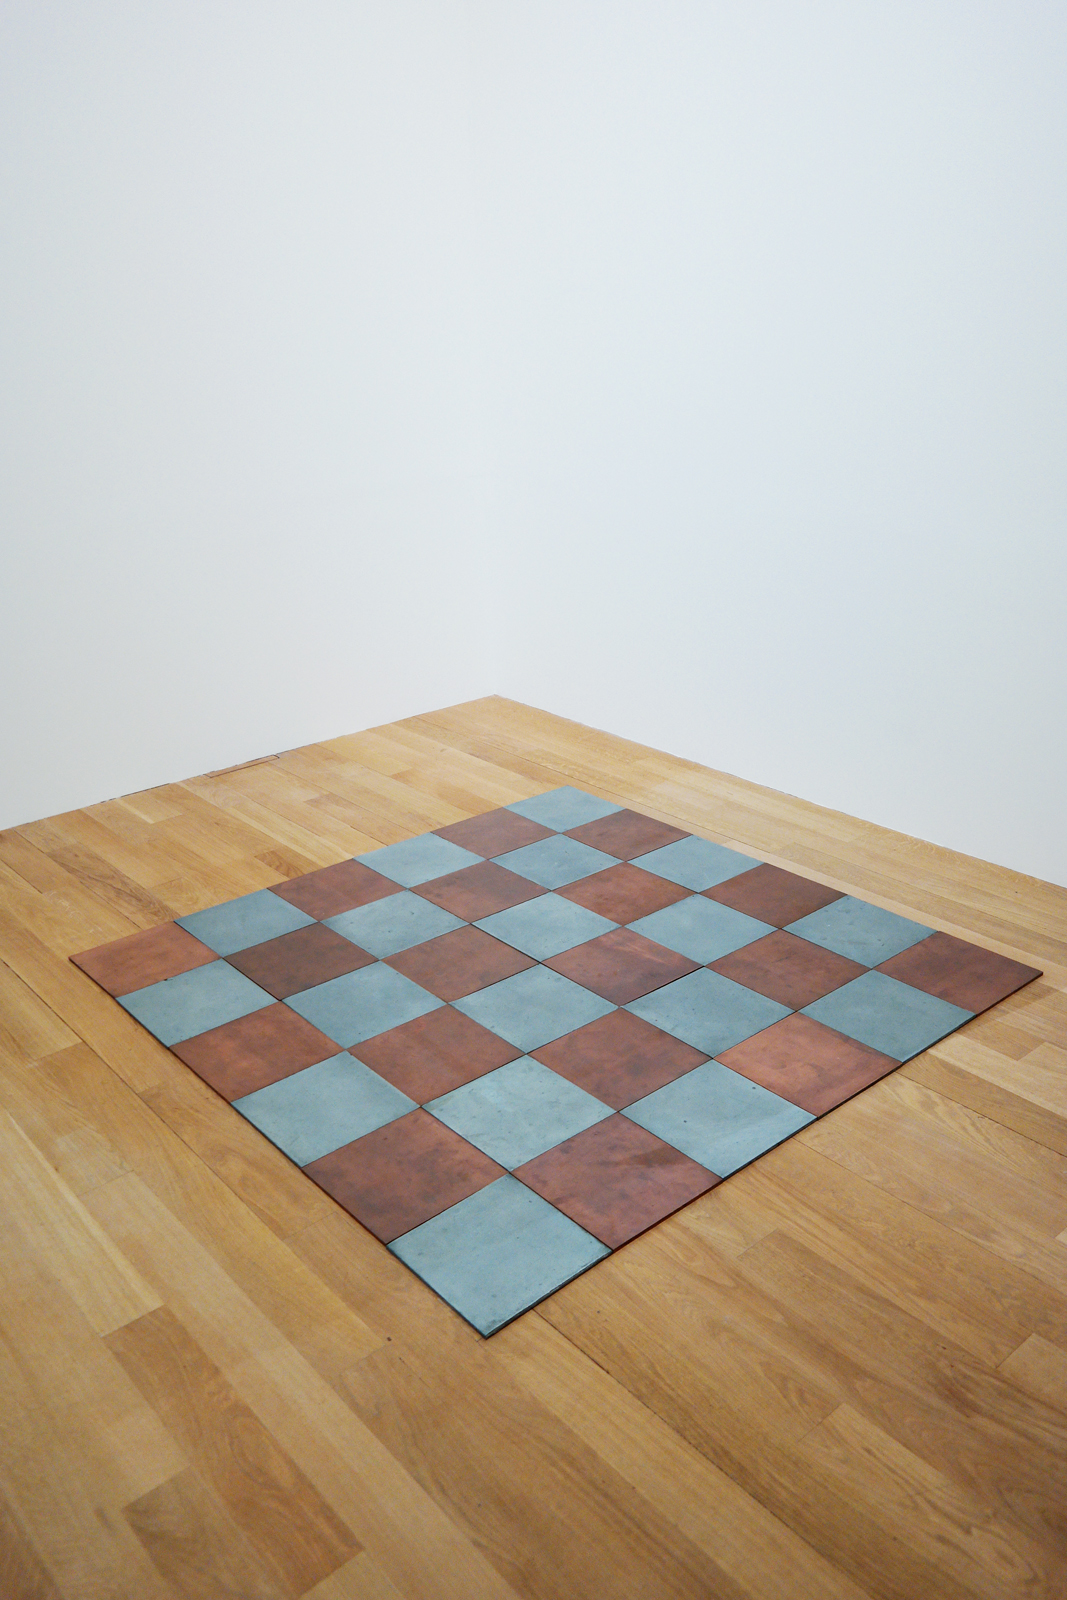 Copper-Zinc Plan, 1969, by Carl Andre